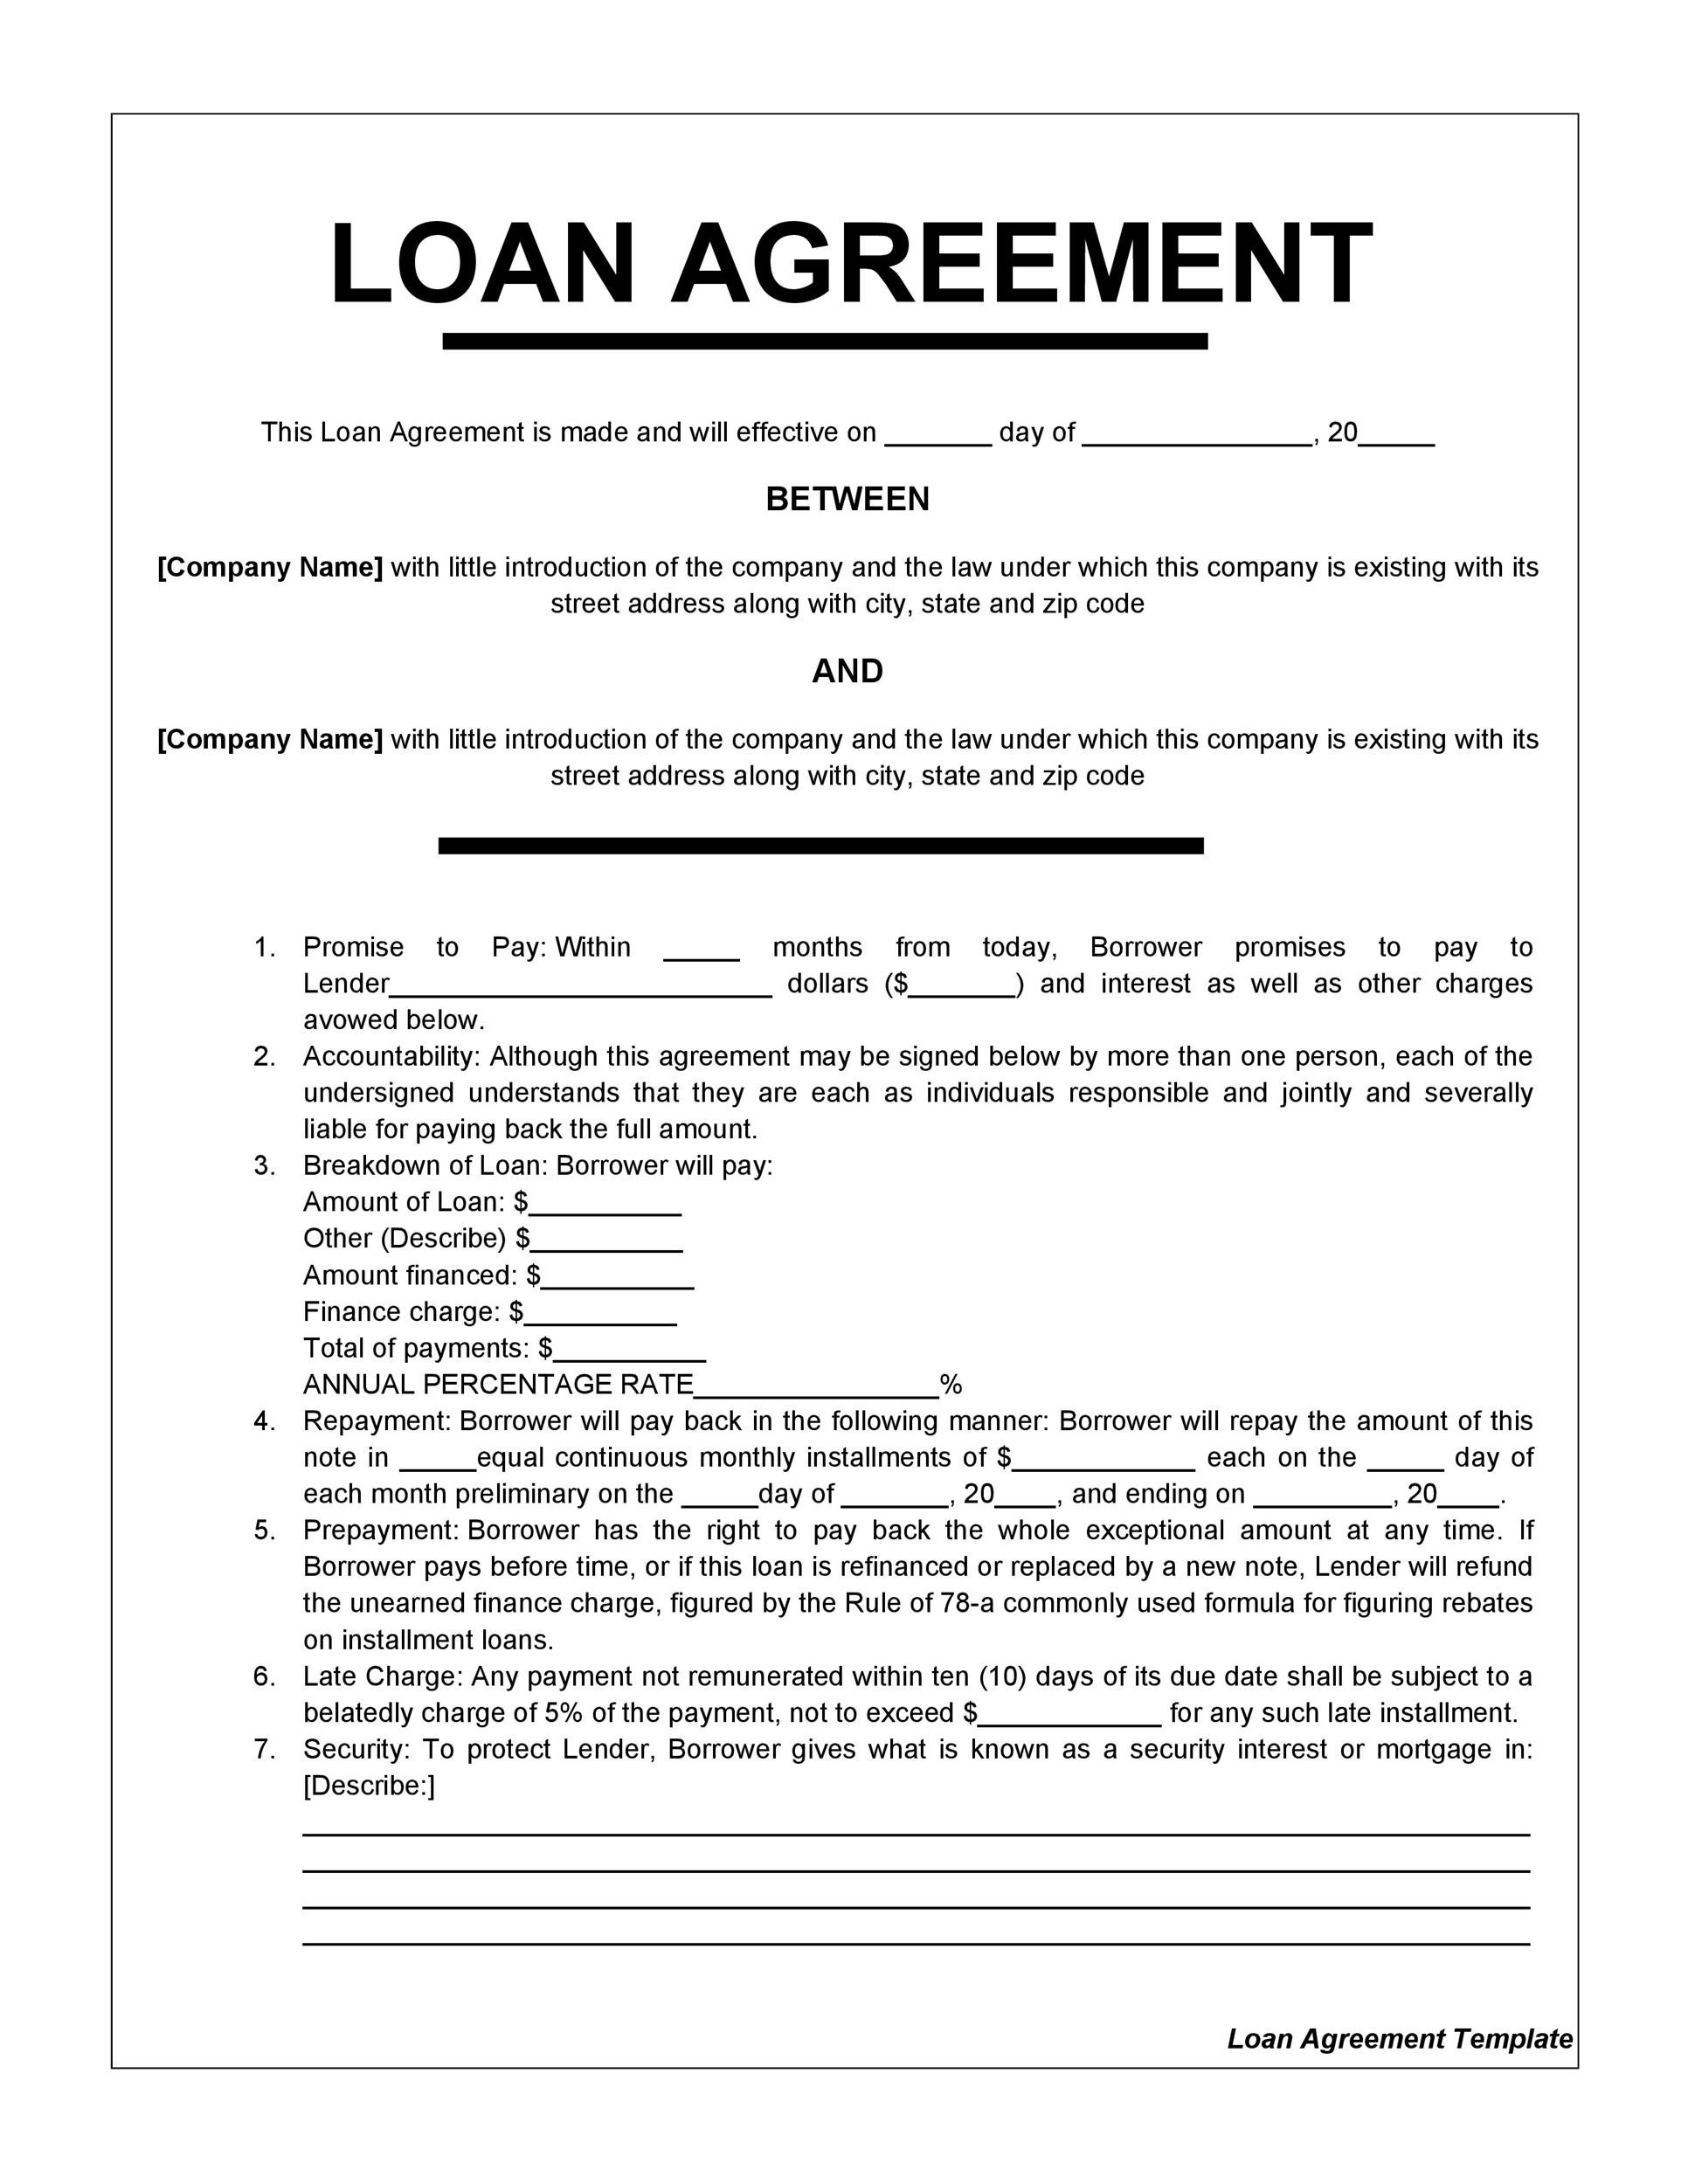 Free loan agreement template 07